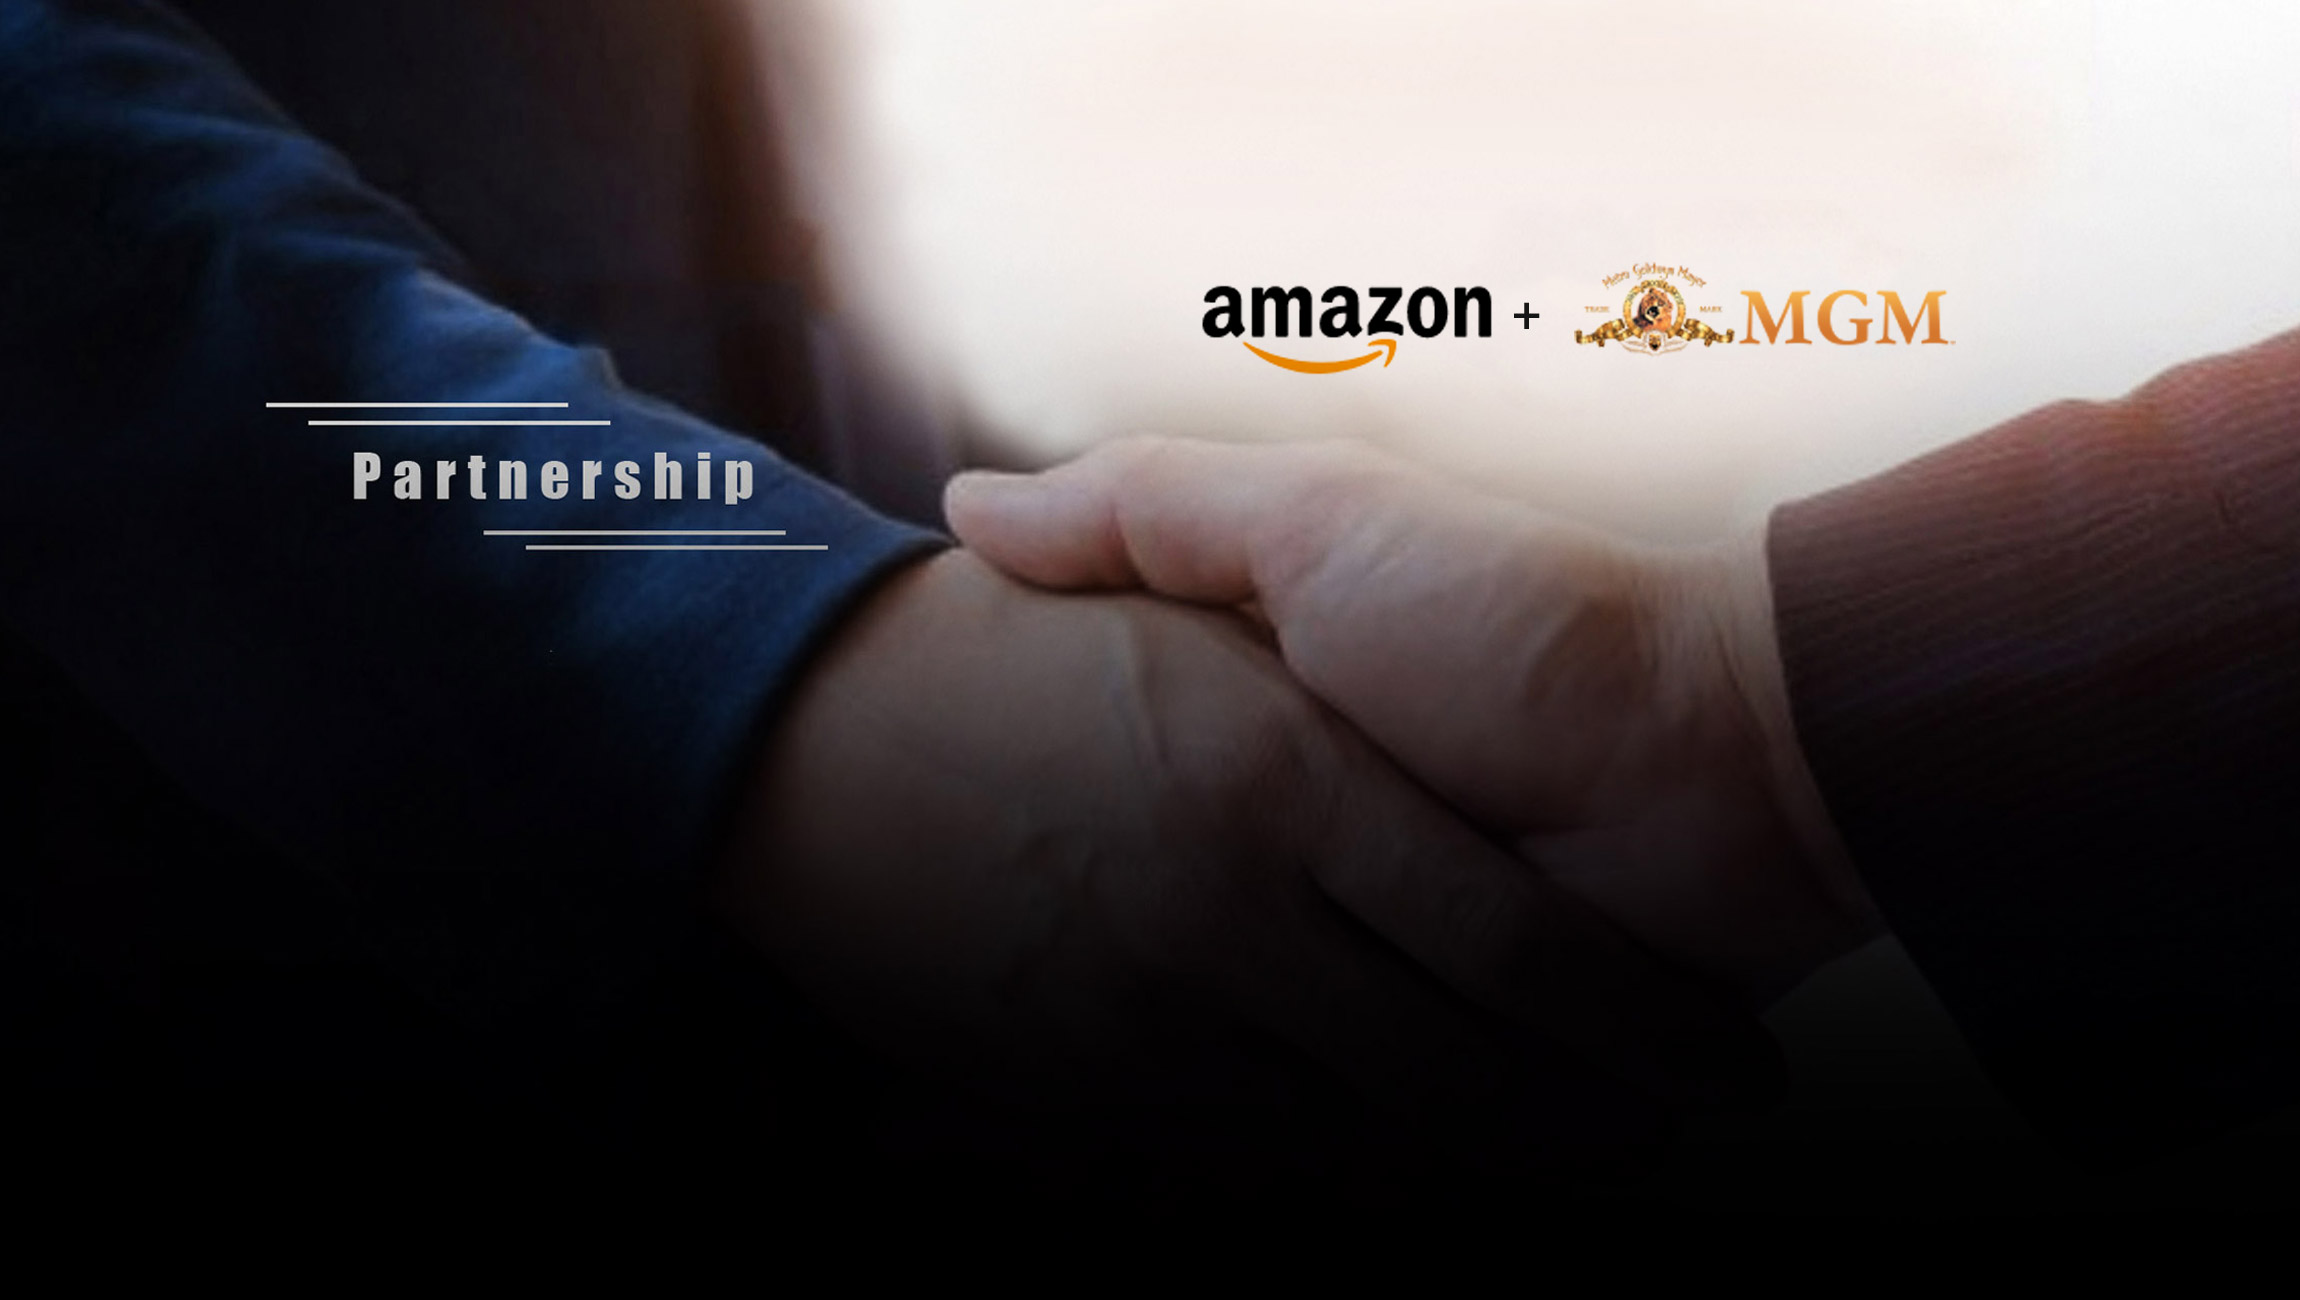 AWS Announces Partnership with MGM to Modernize its Media Supply Chain